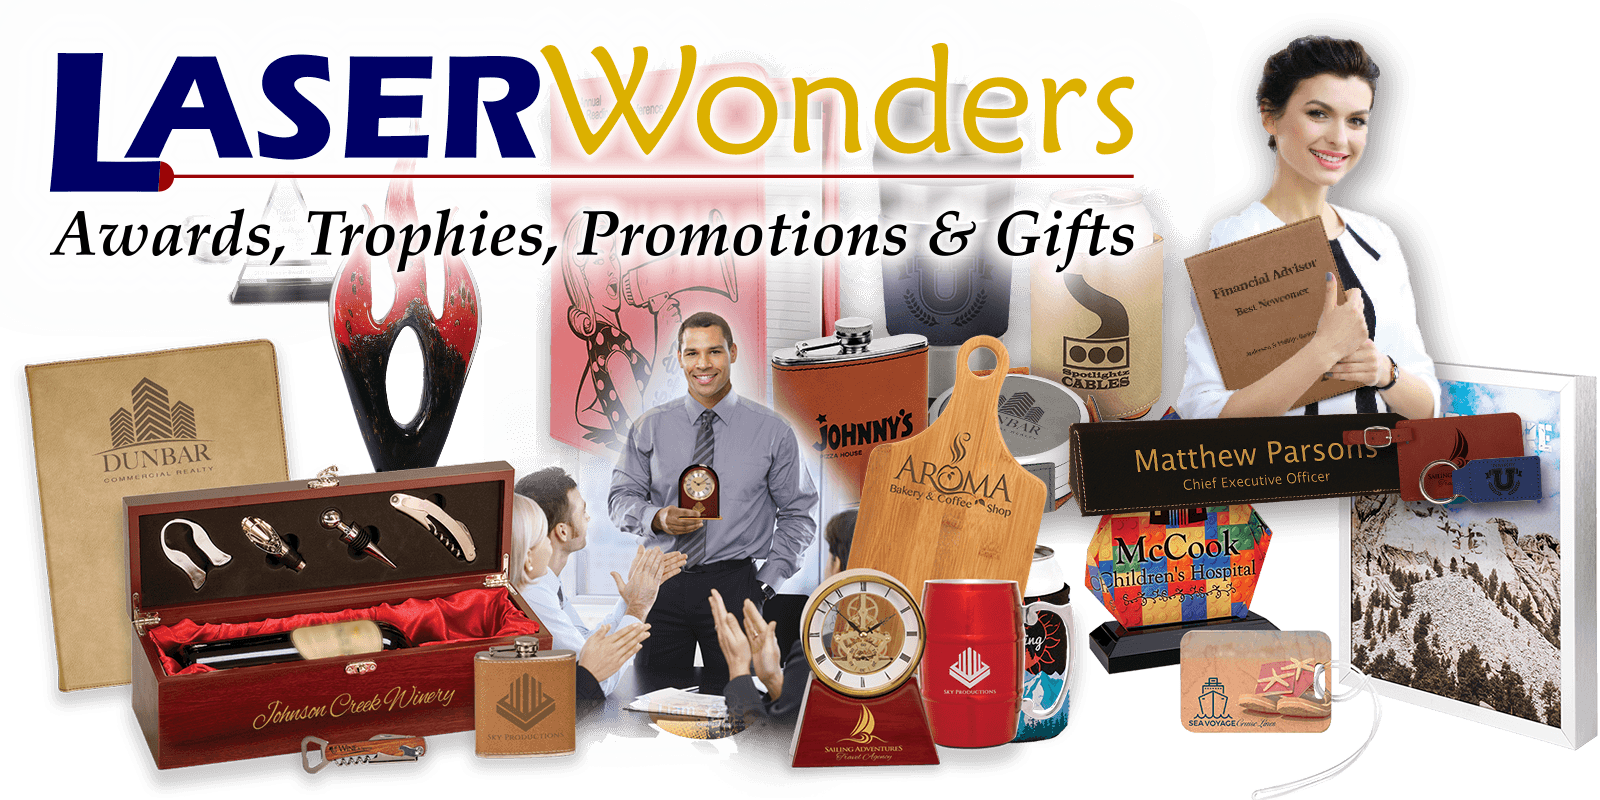 Laser Wonders - Awards, Trophies, Promotions, & Gifts